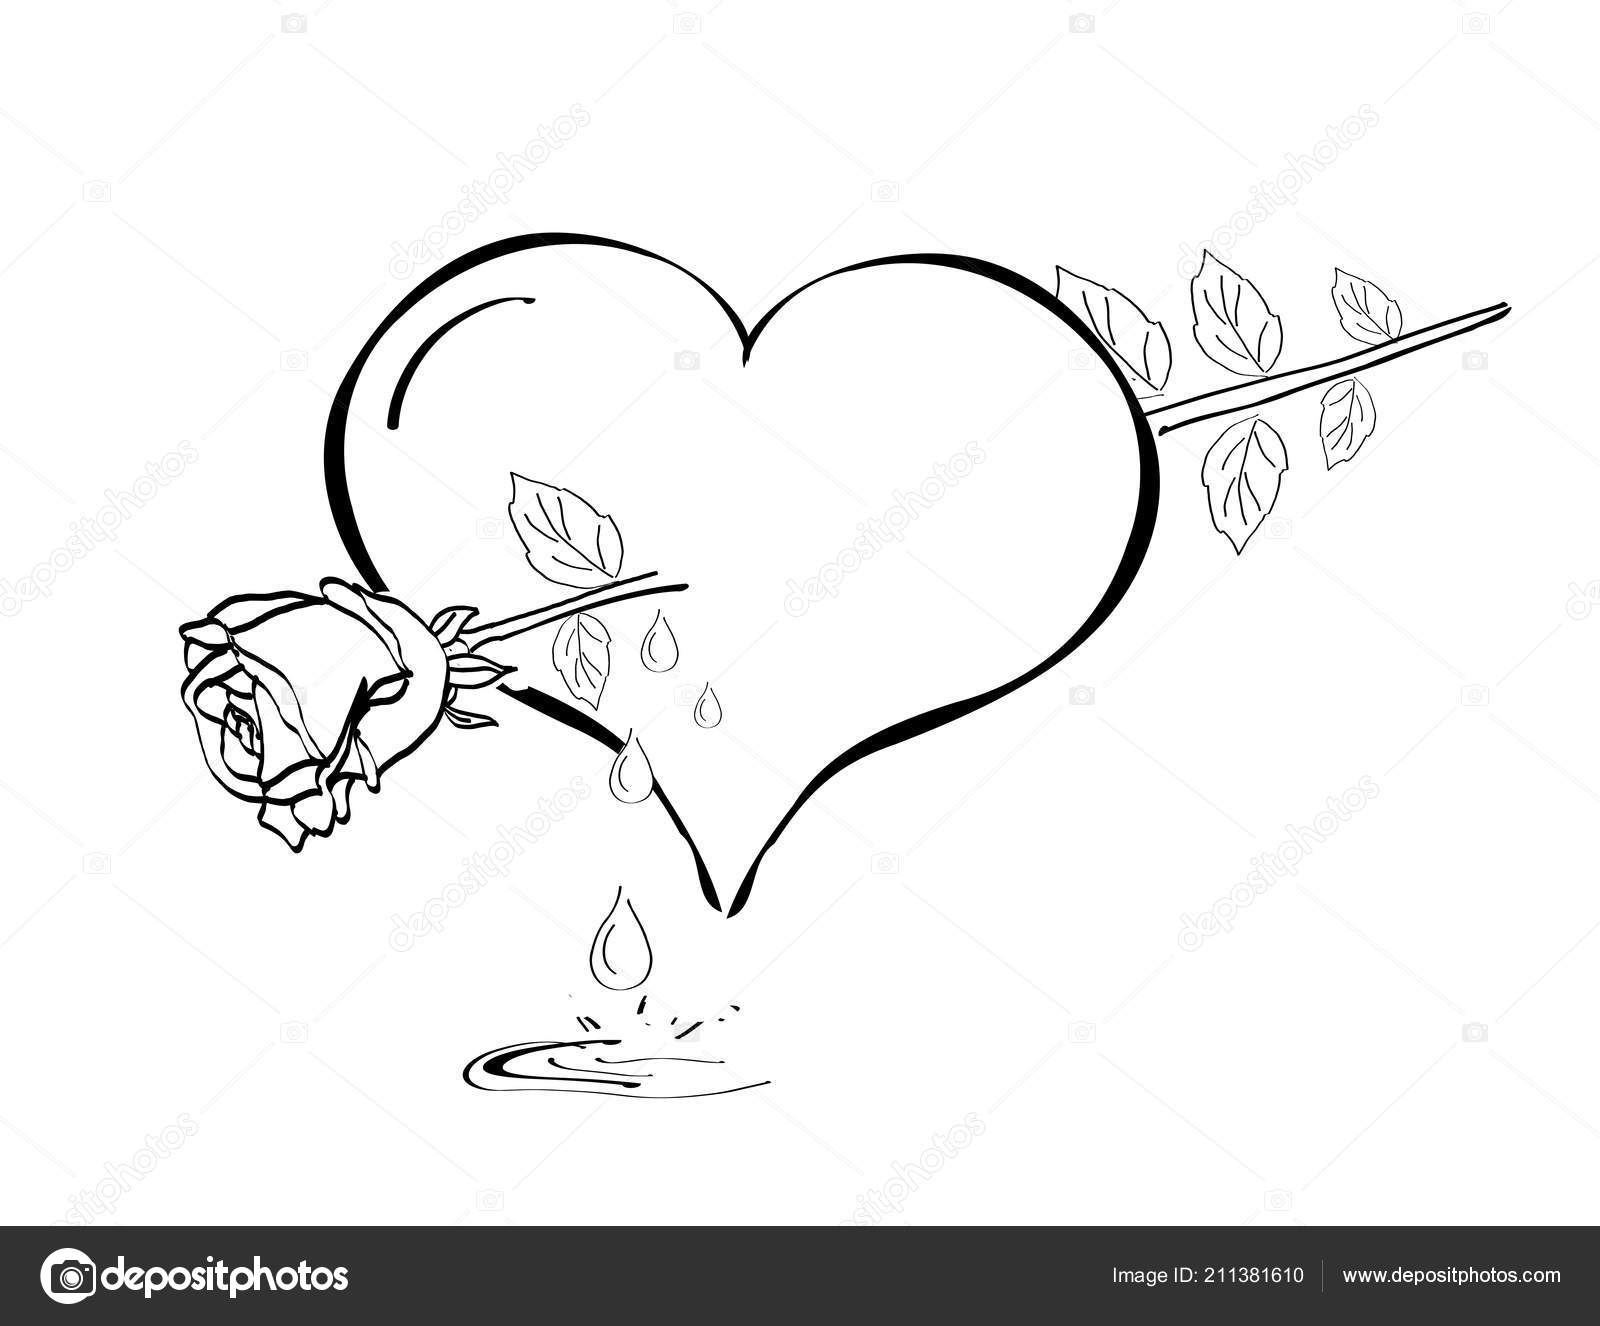 Illustration Broken Heart Rose Arrow Stock Photo C Sidliks 211381610